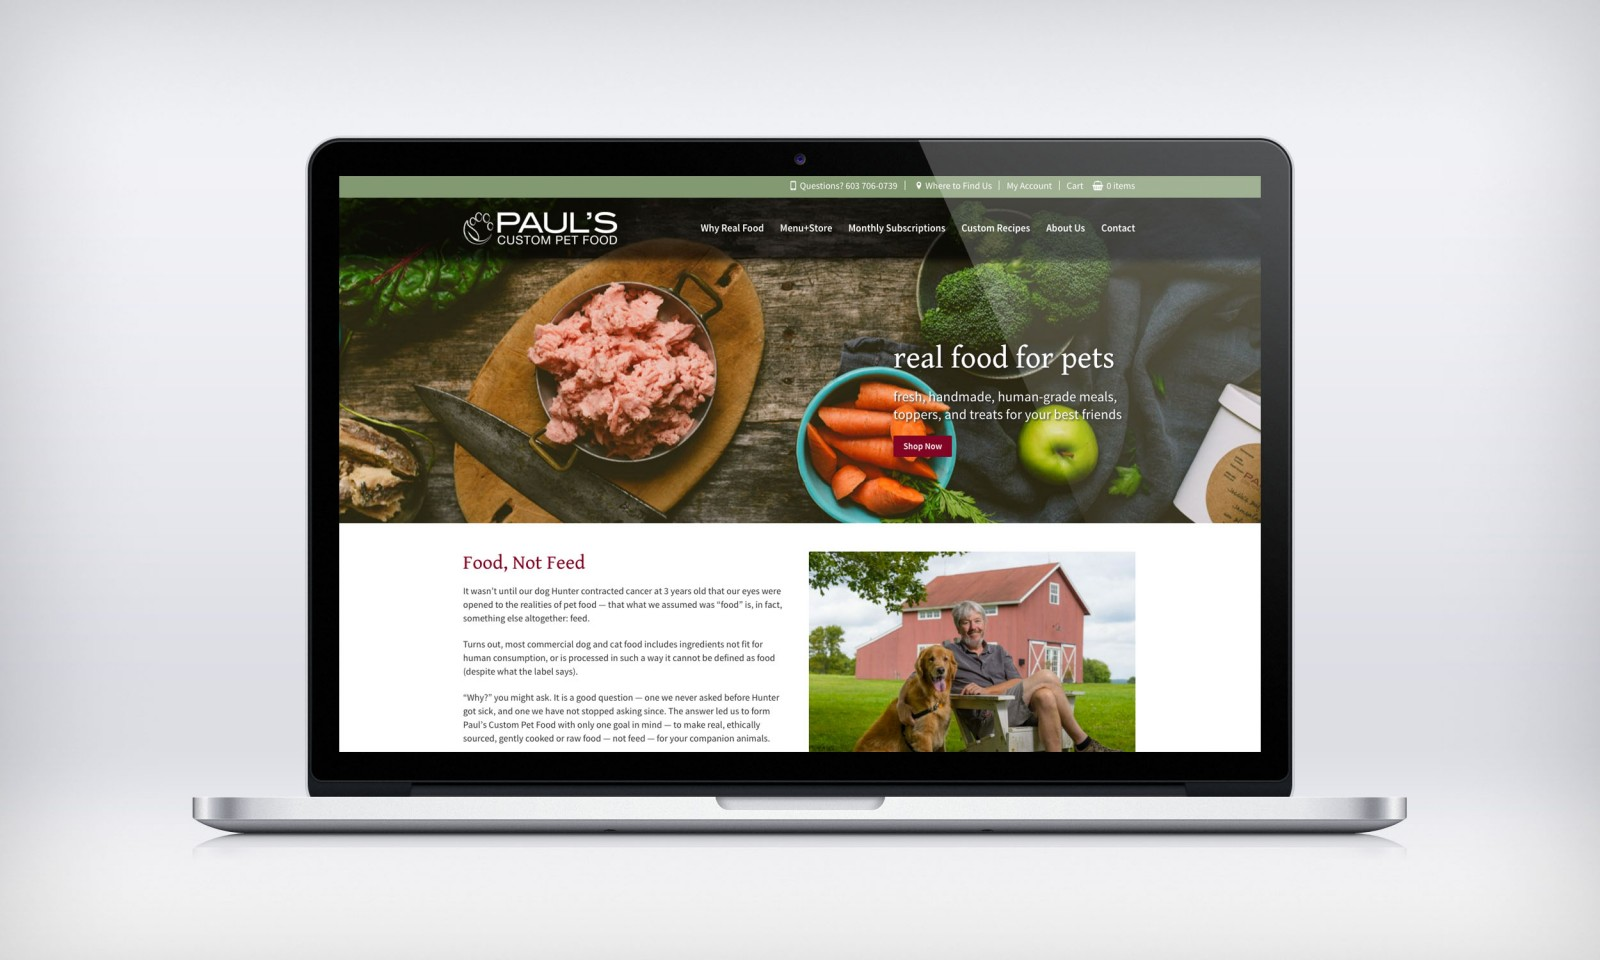 Paul's Custom Pet Food website